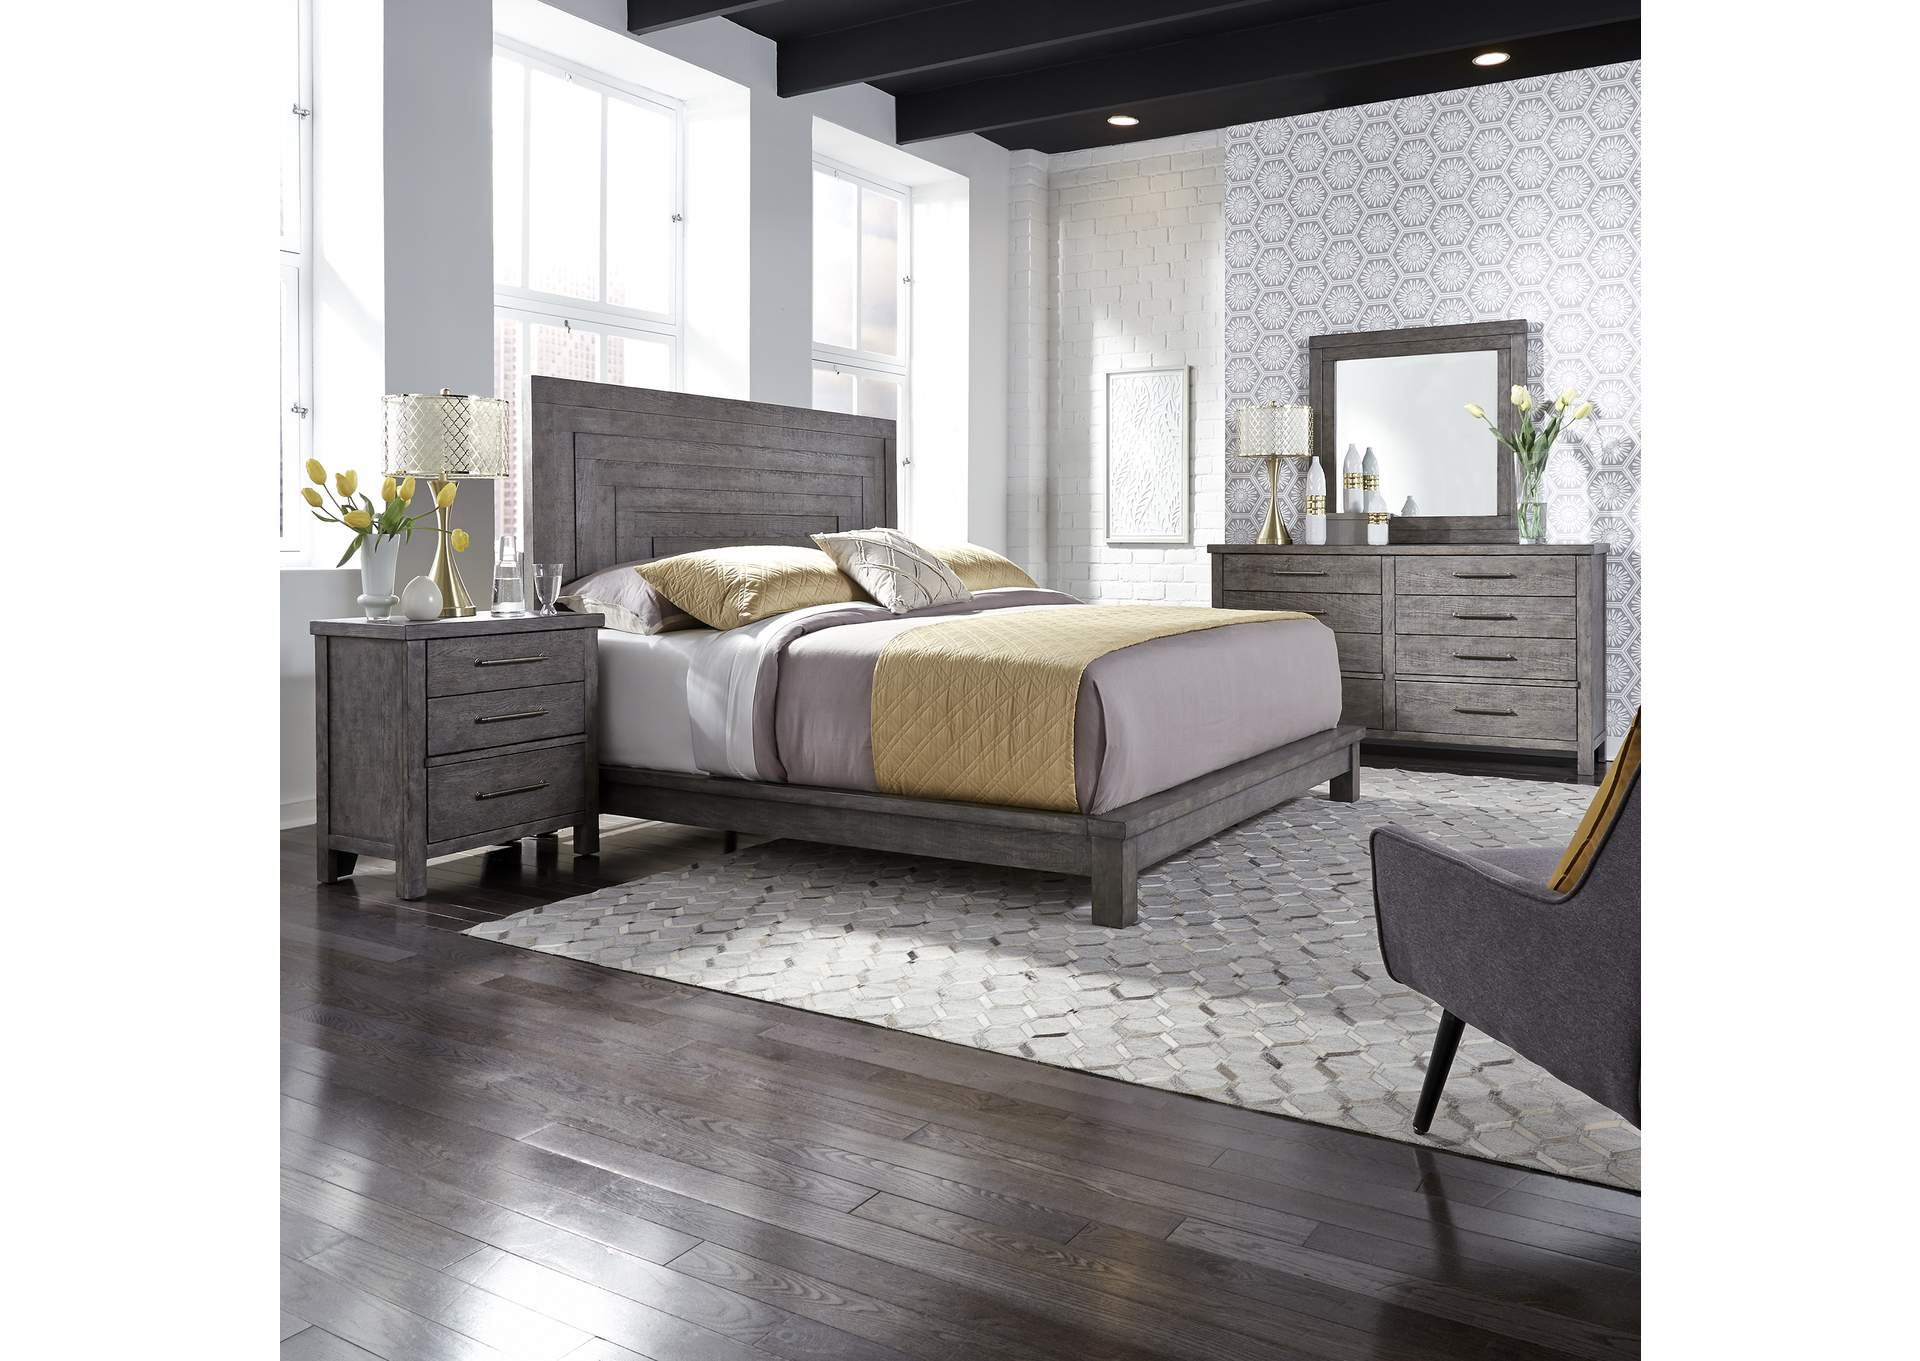 Modern Farmhouse Dusty Charcoal Queen Platform Bed Dresser Mirror Night Stand Roberts Furniture Mattress